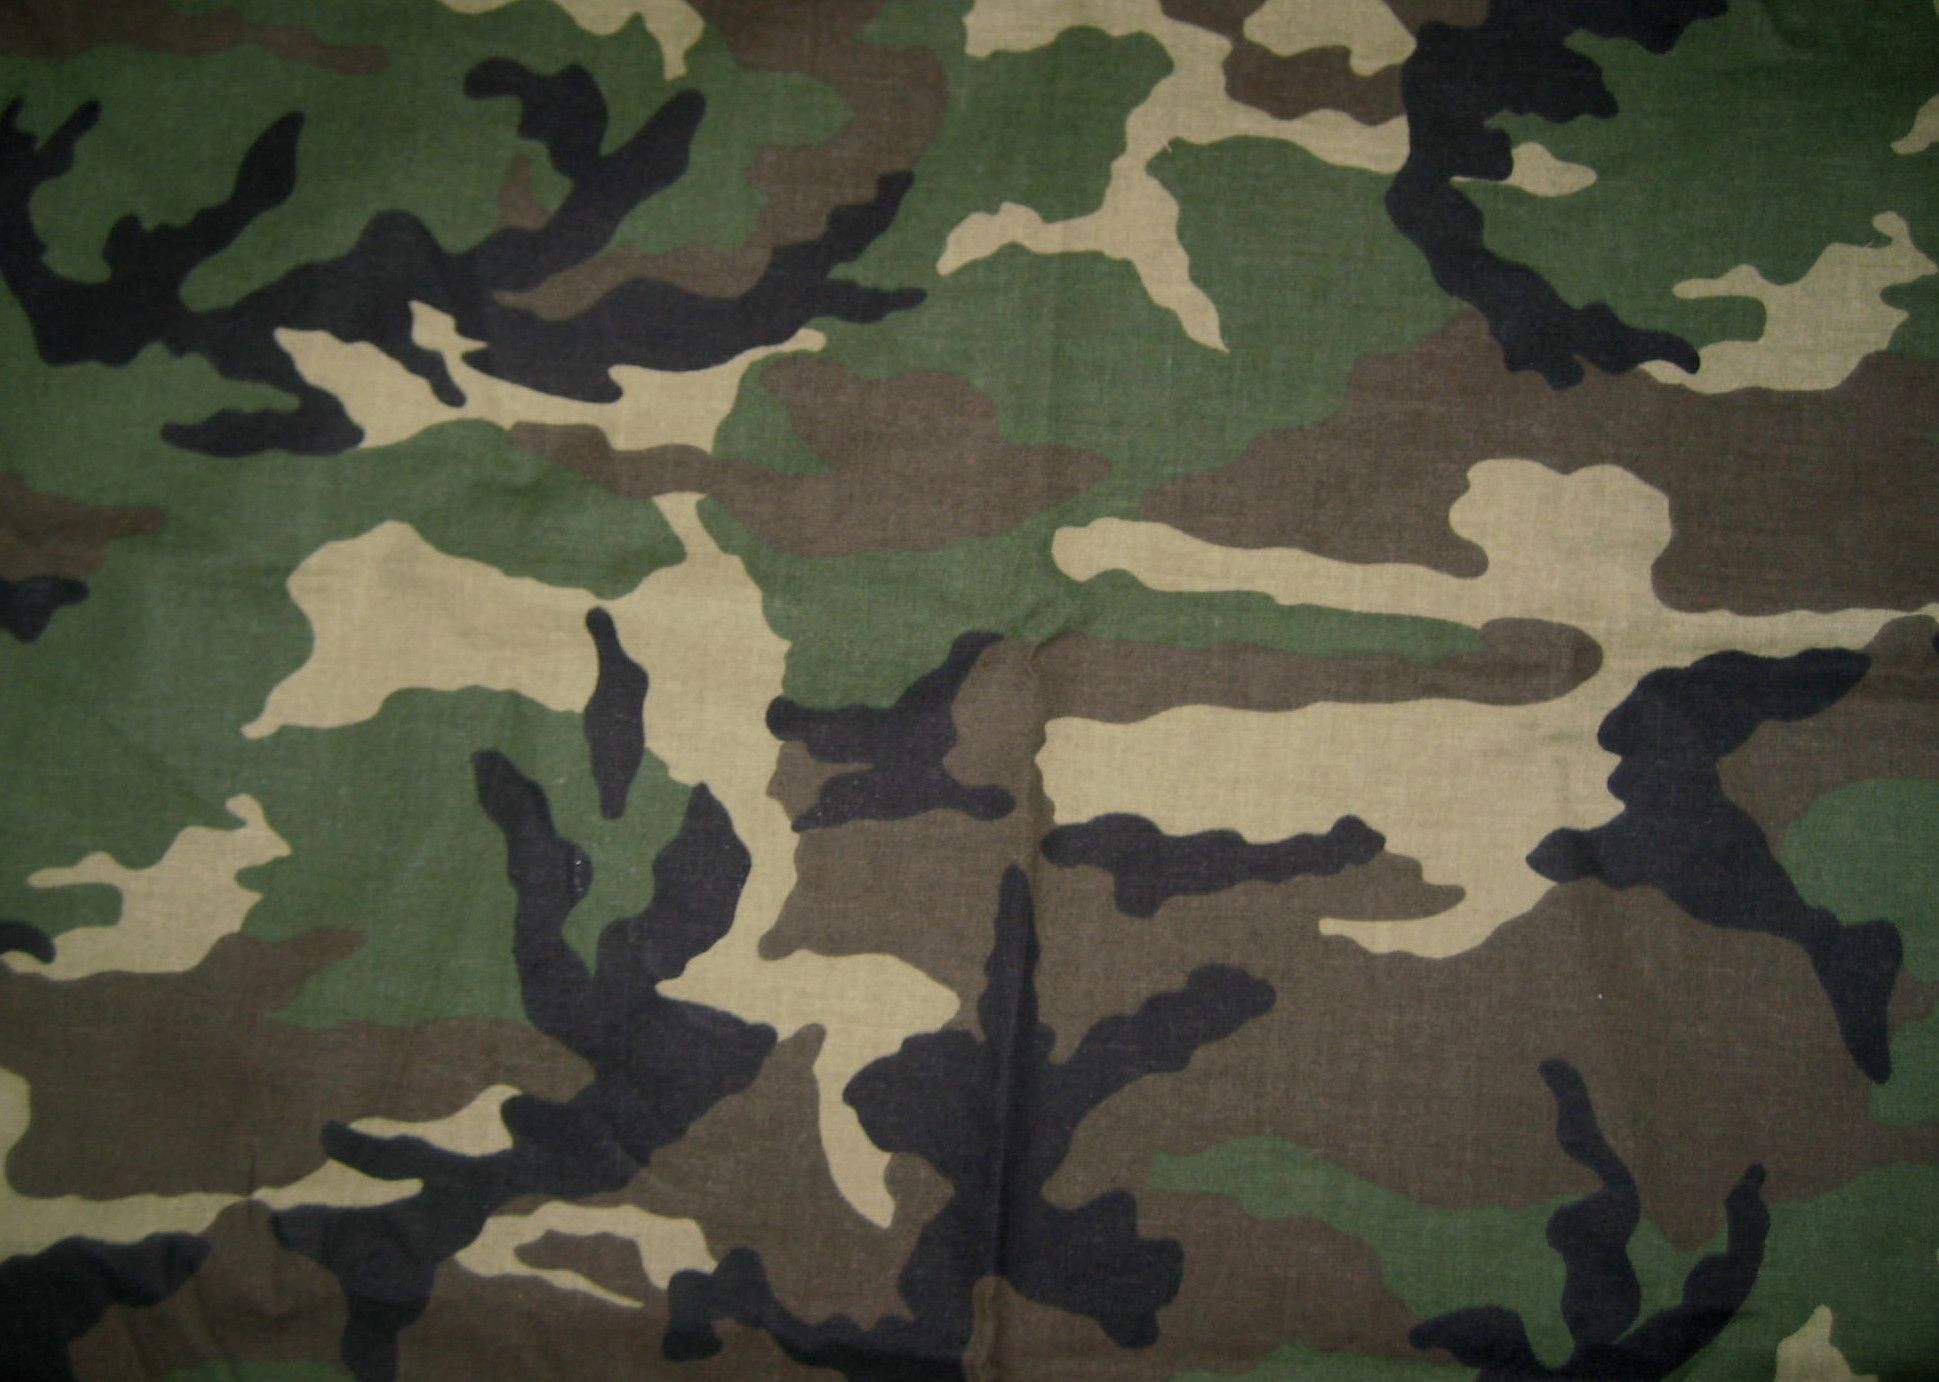 Military Camo Wallpaper Woodland camo wallpapers  wallpaper cave